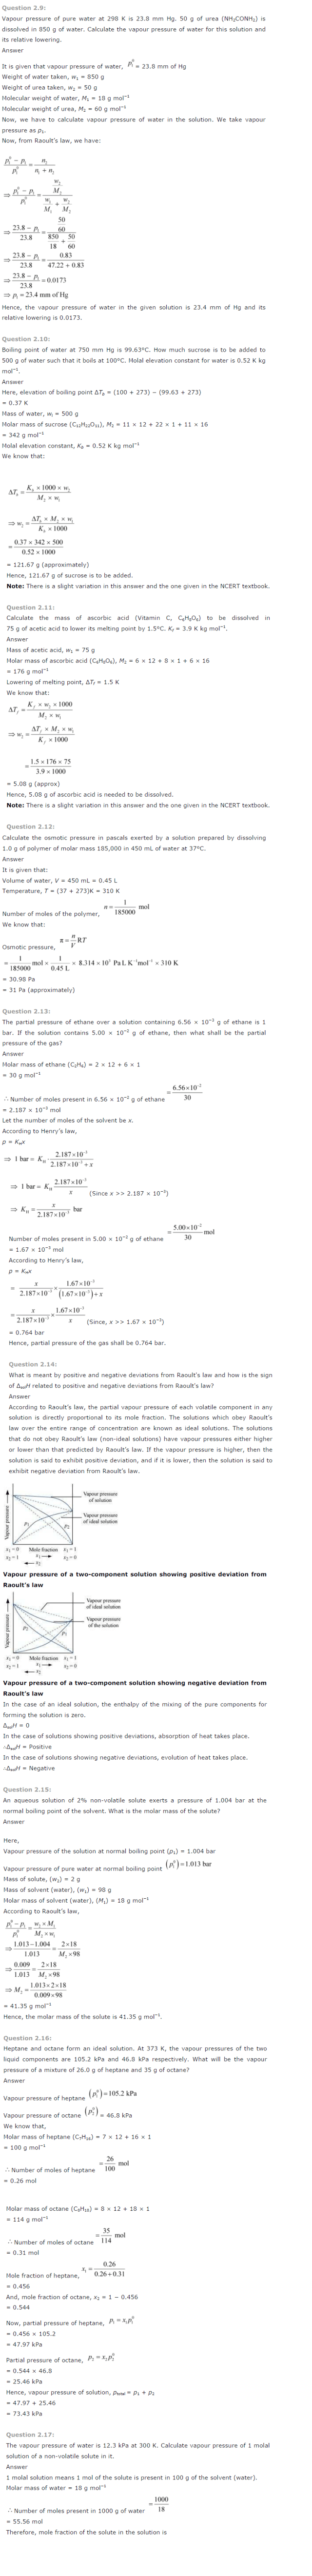 Class 12 Chemistry Chapter 2: Solutions